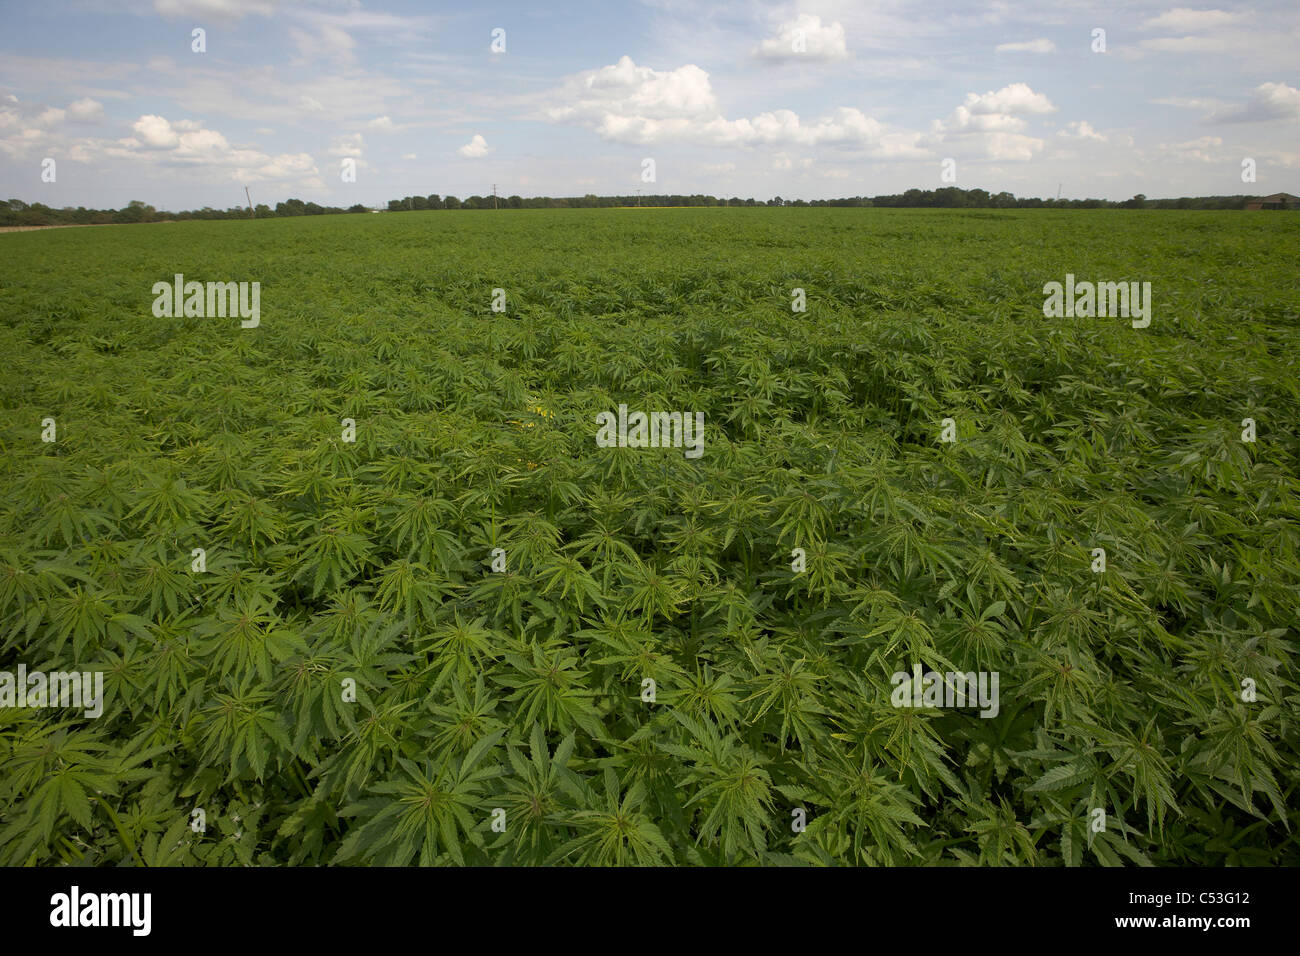 Commercial Hemp crop growing in East Yorkshire, UK. Field of cannabis plants, Cannabis sativa. - Stock Image